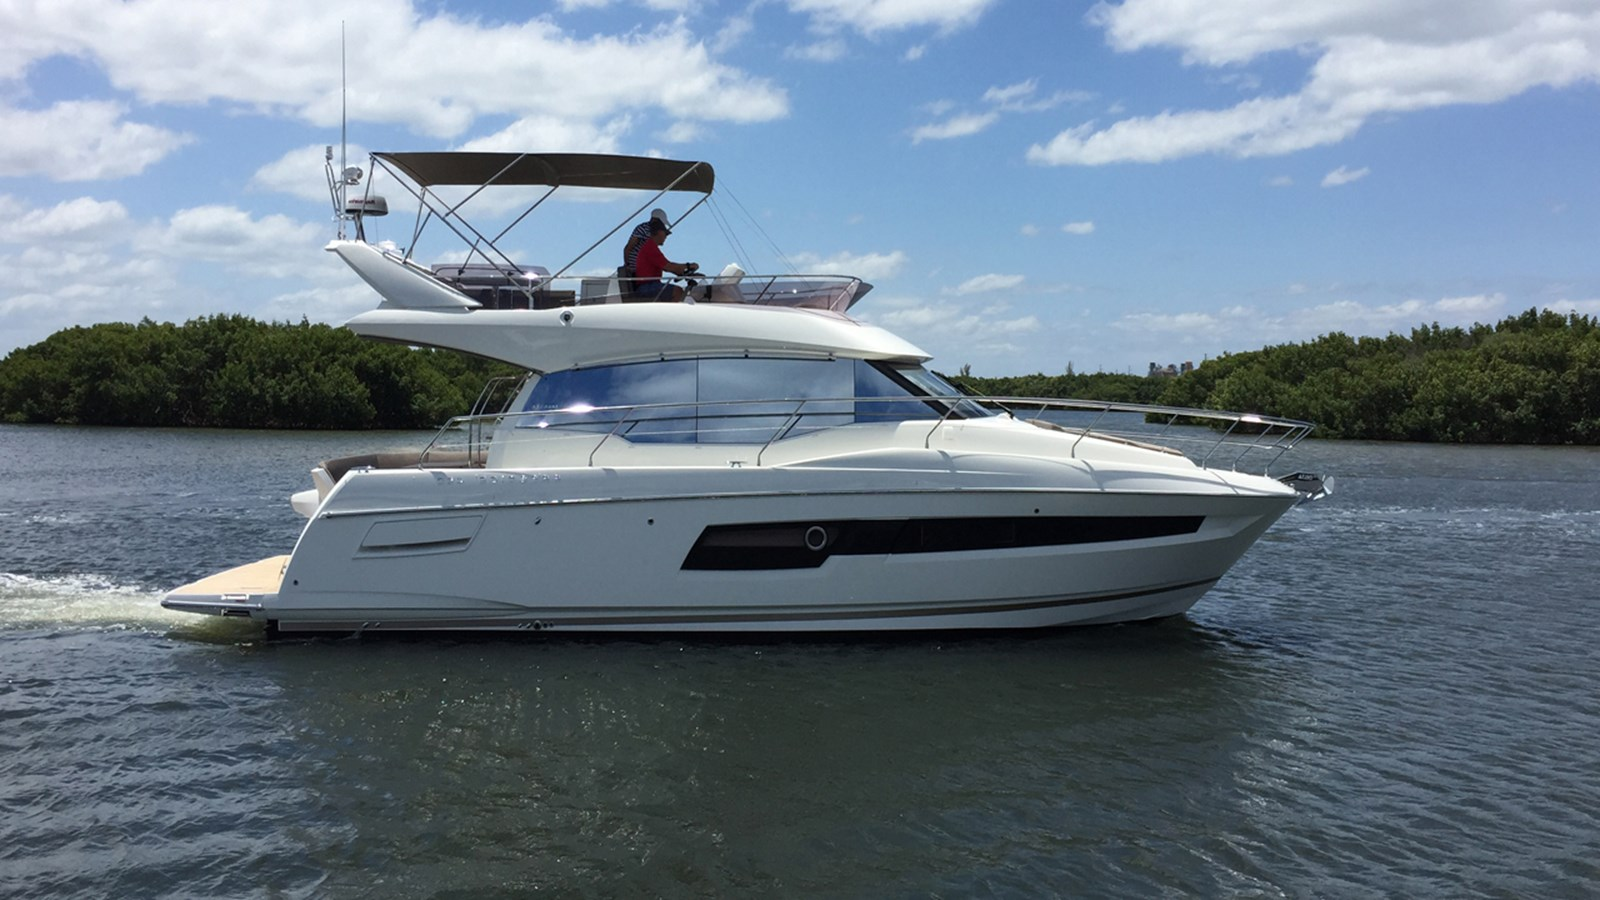 2017 PRESTIGE 460 Flybrige For Sale